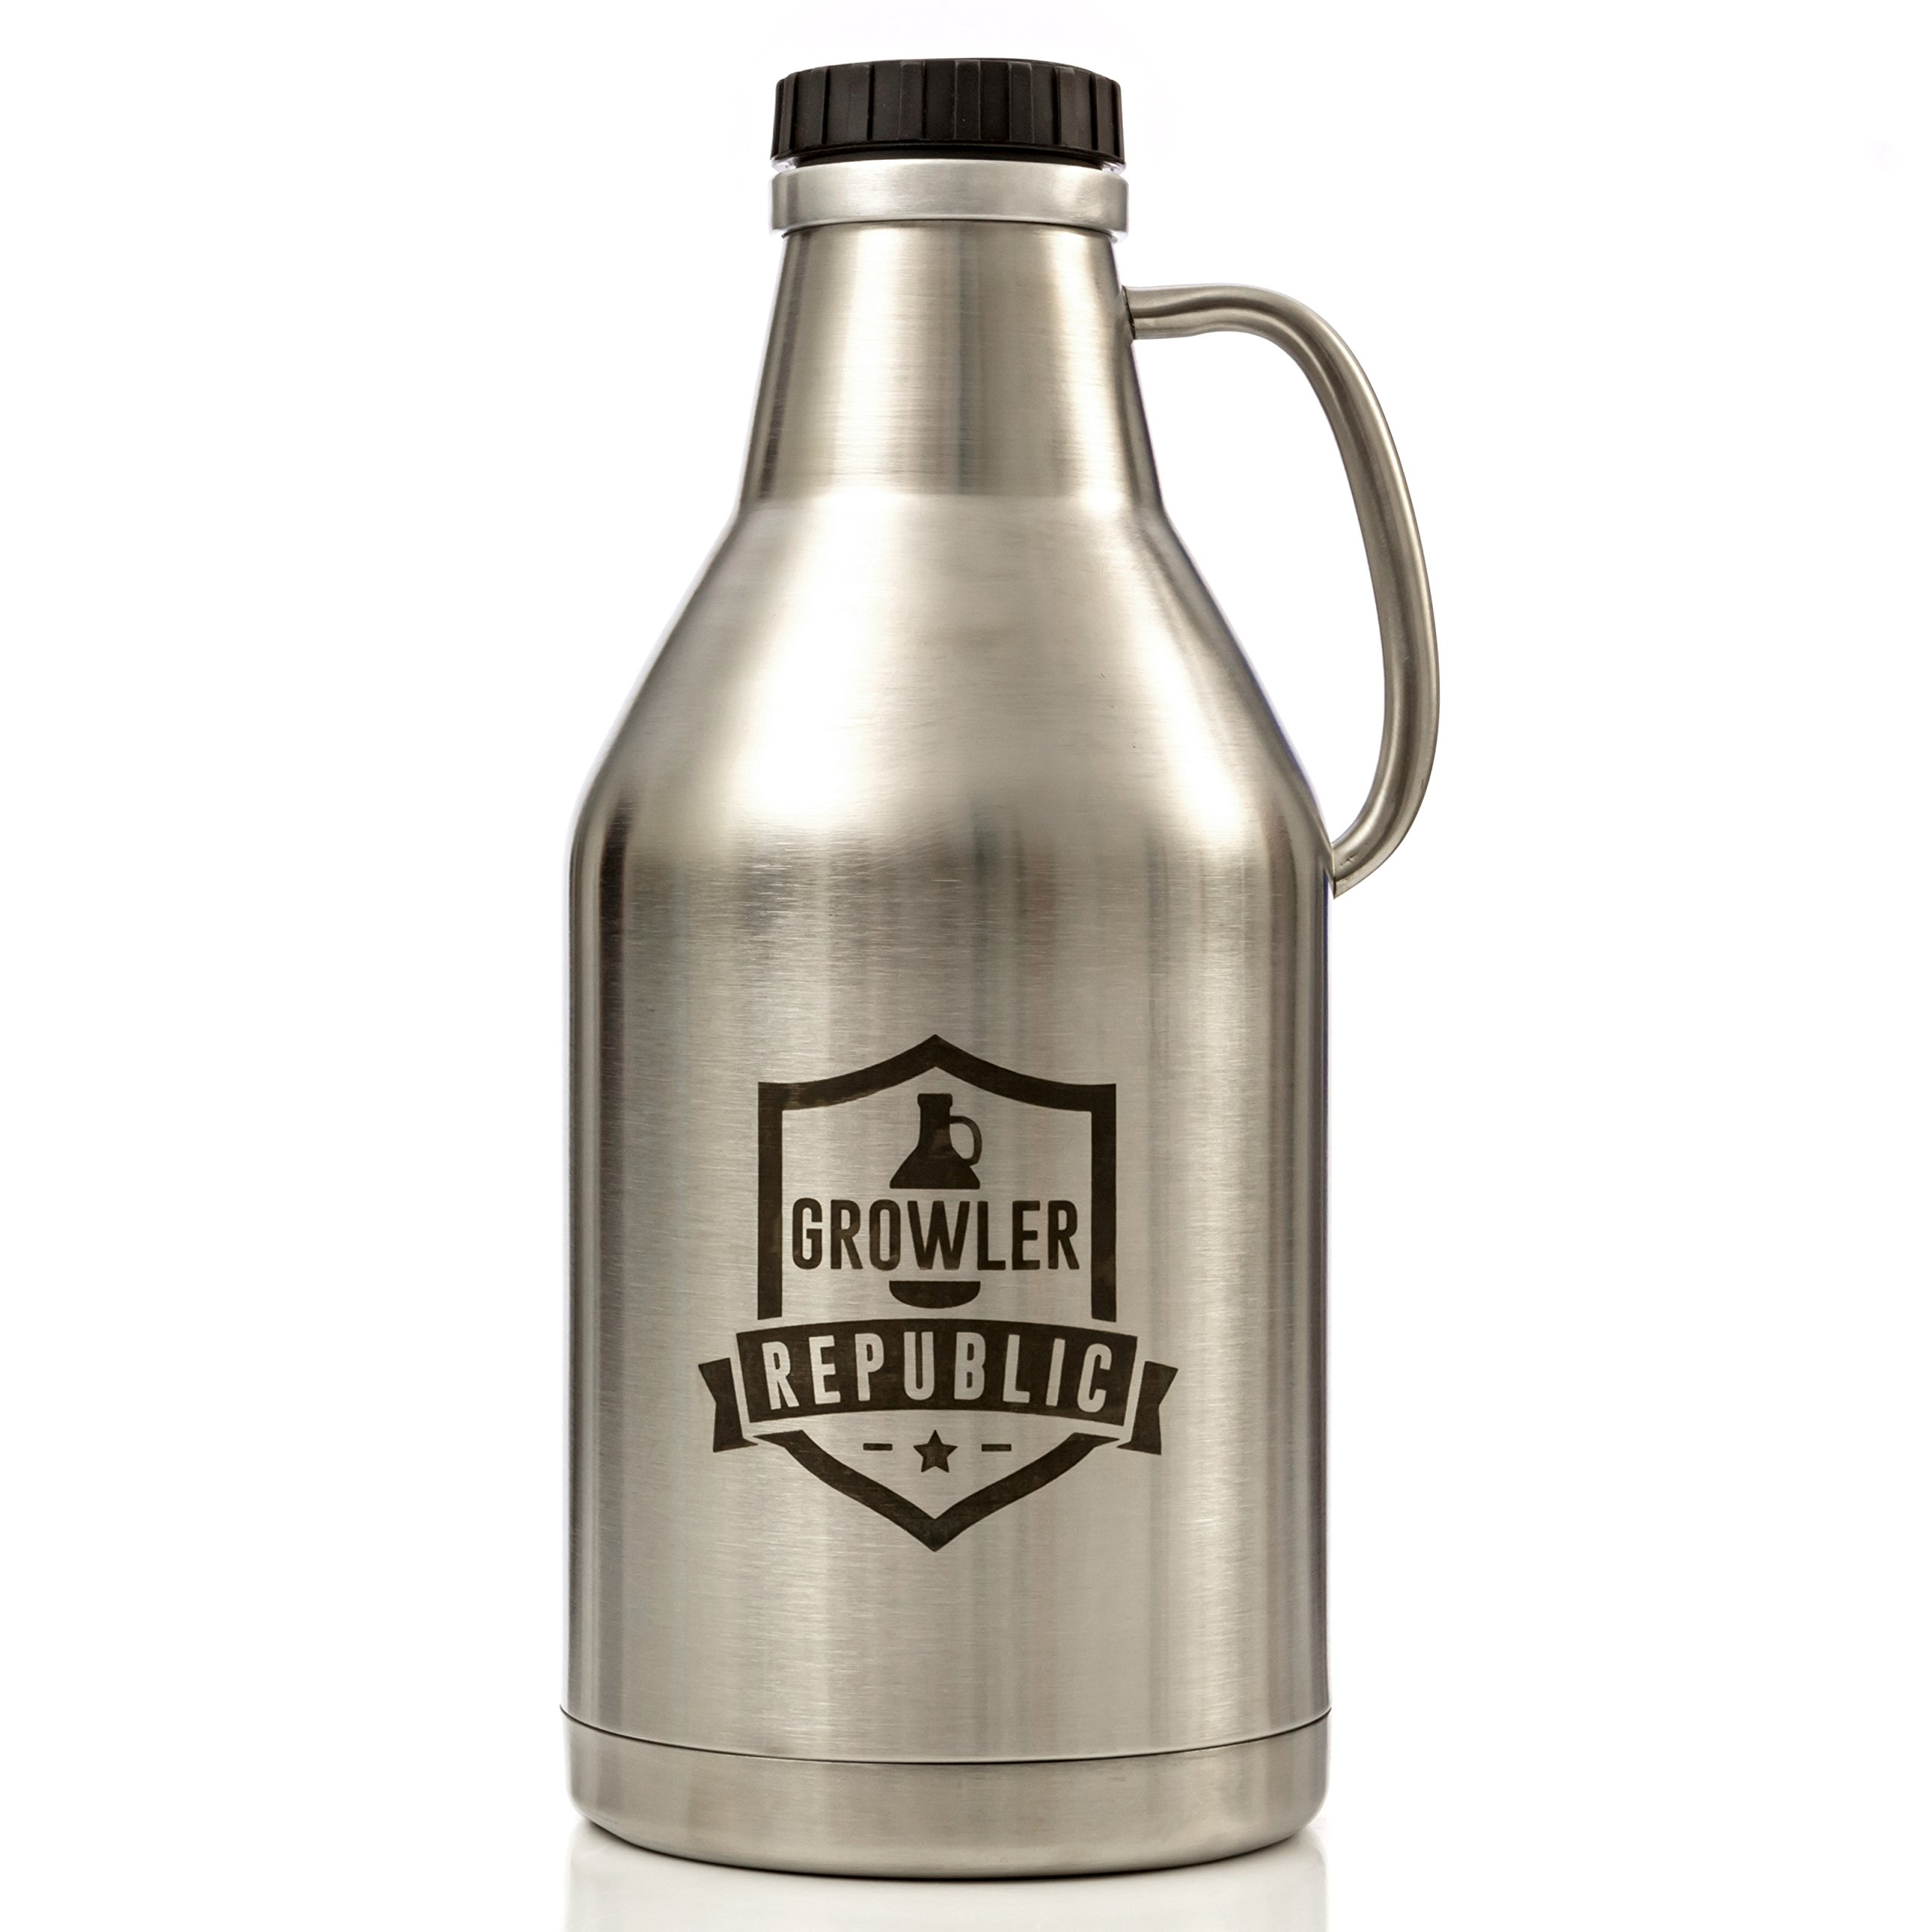 The Jug - Stainless Steel Beer Growler With Handle & Screw Top 64oz Double Wall Insulated